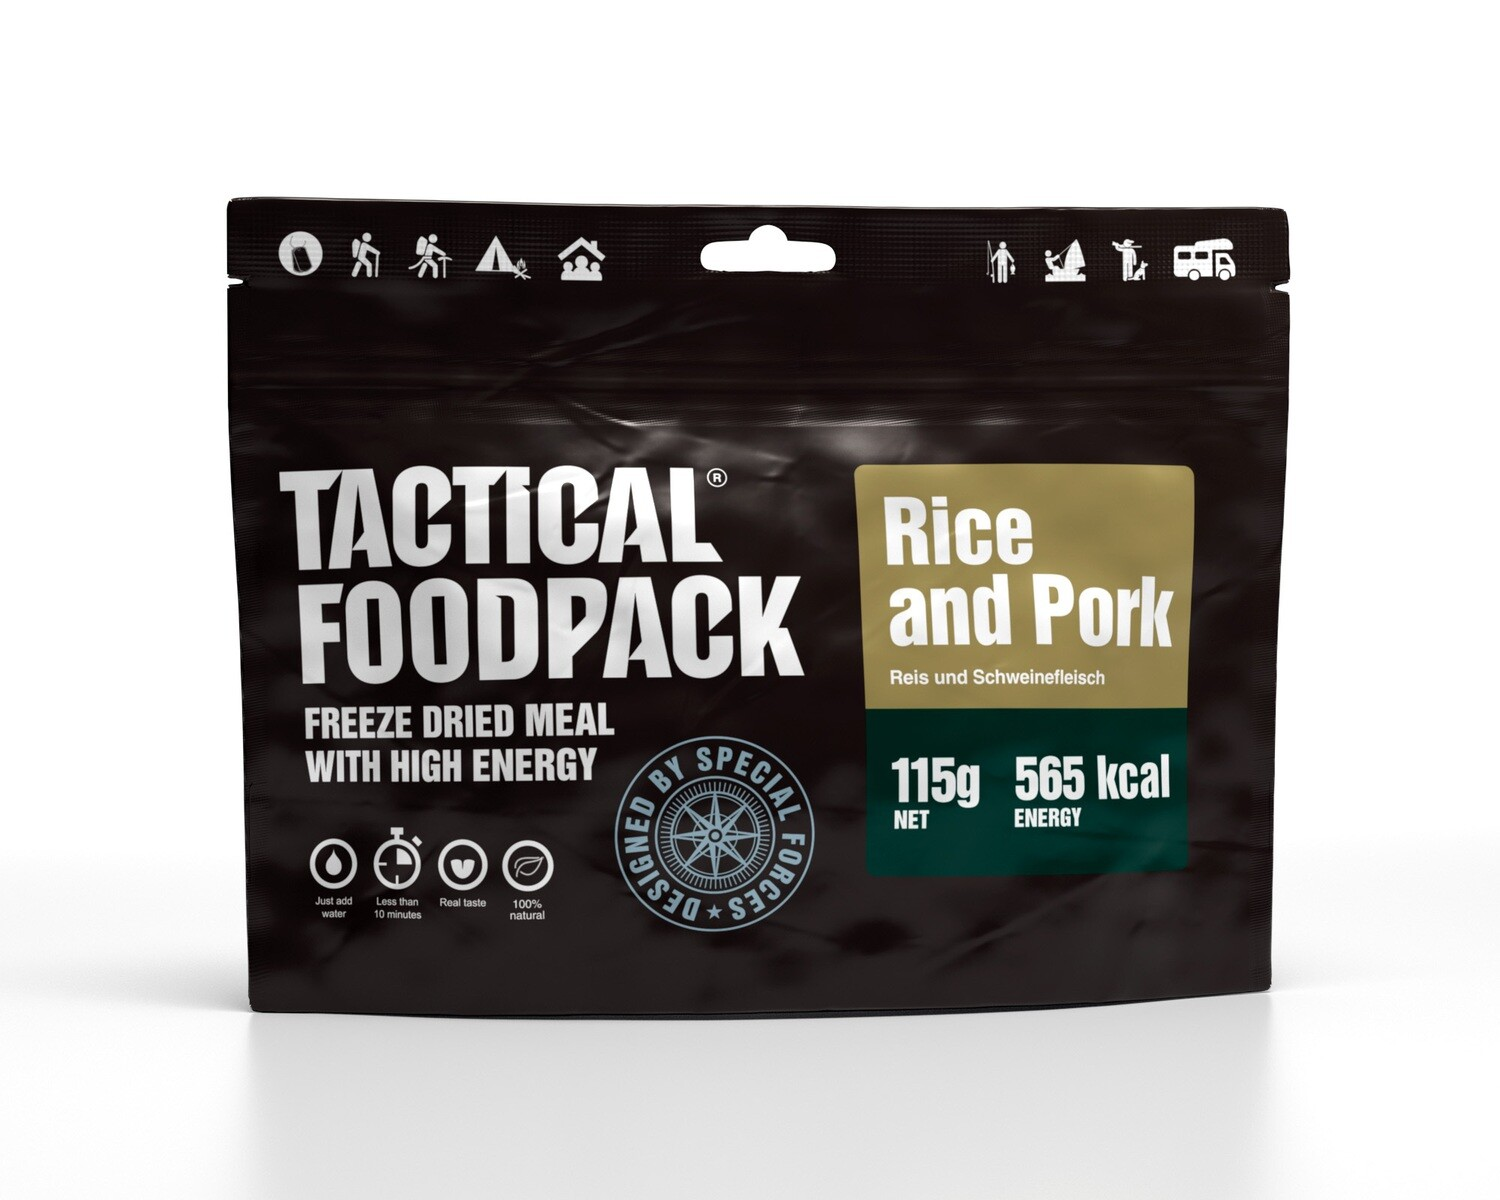 Tactical Foodpack - Rice and Pork